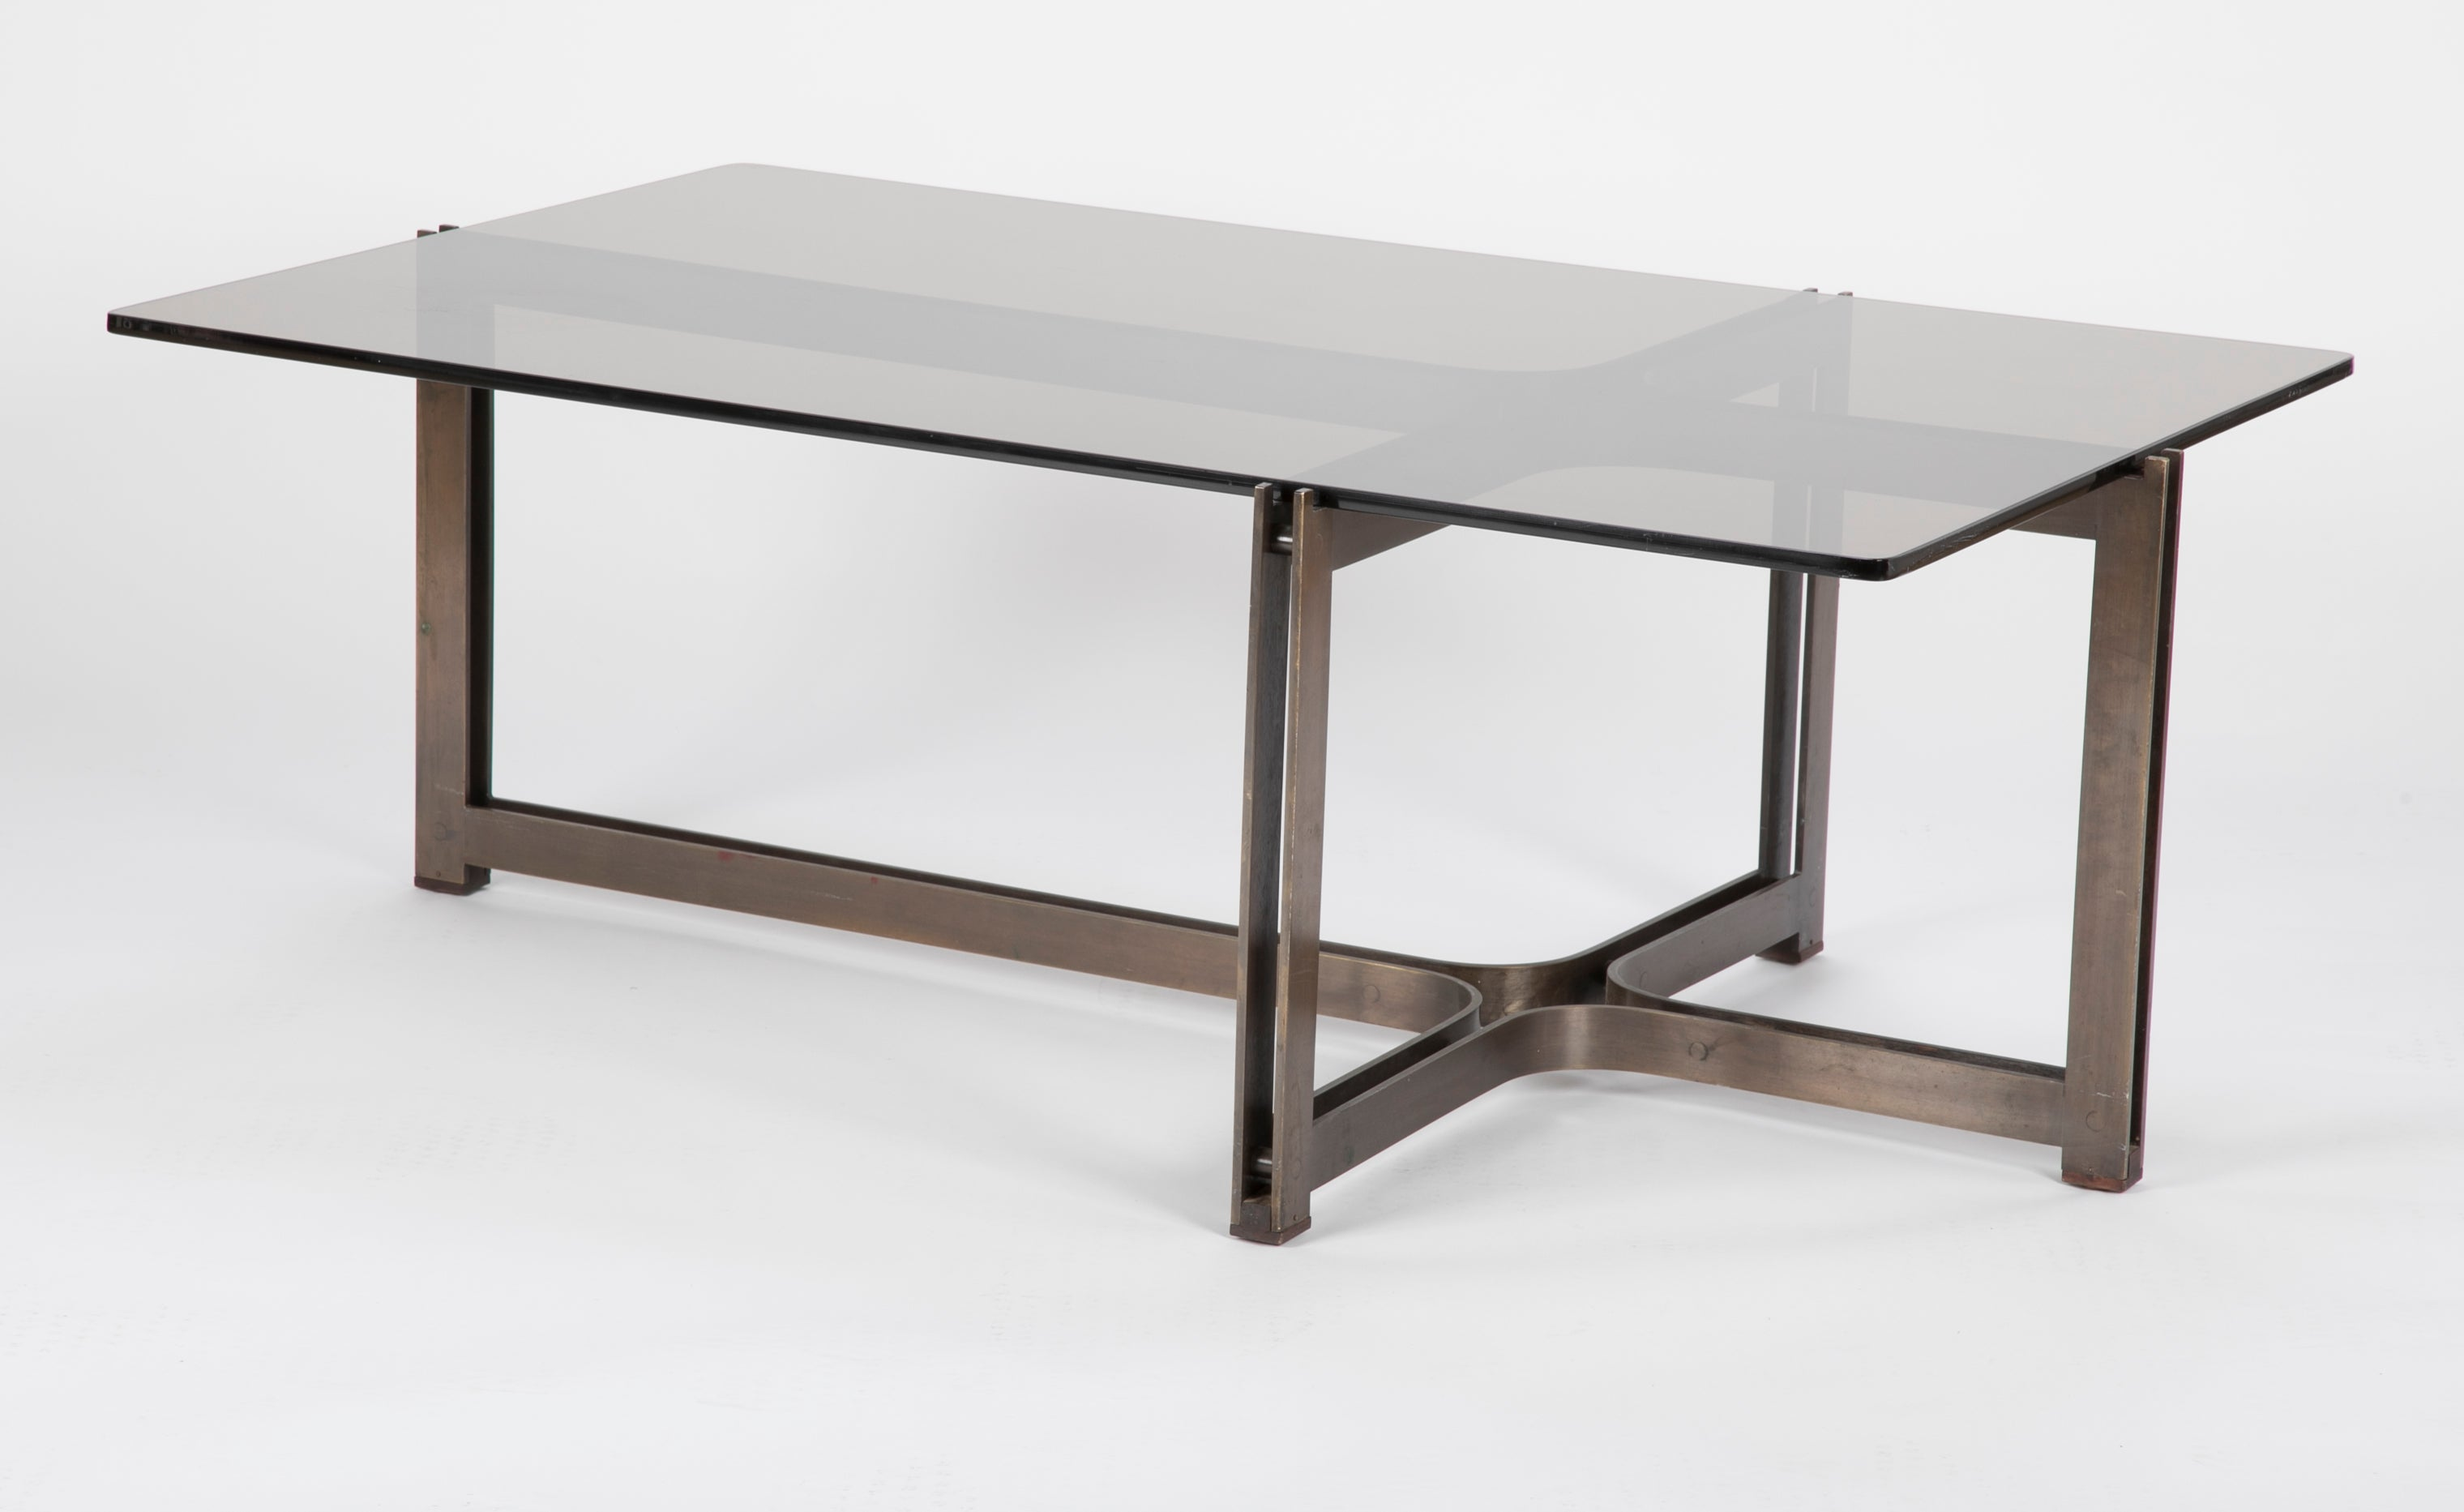 Genial Bronze And Rosewood Coffee Table Designed By Roger Sprunger For Dunbar